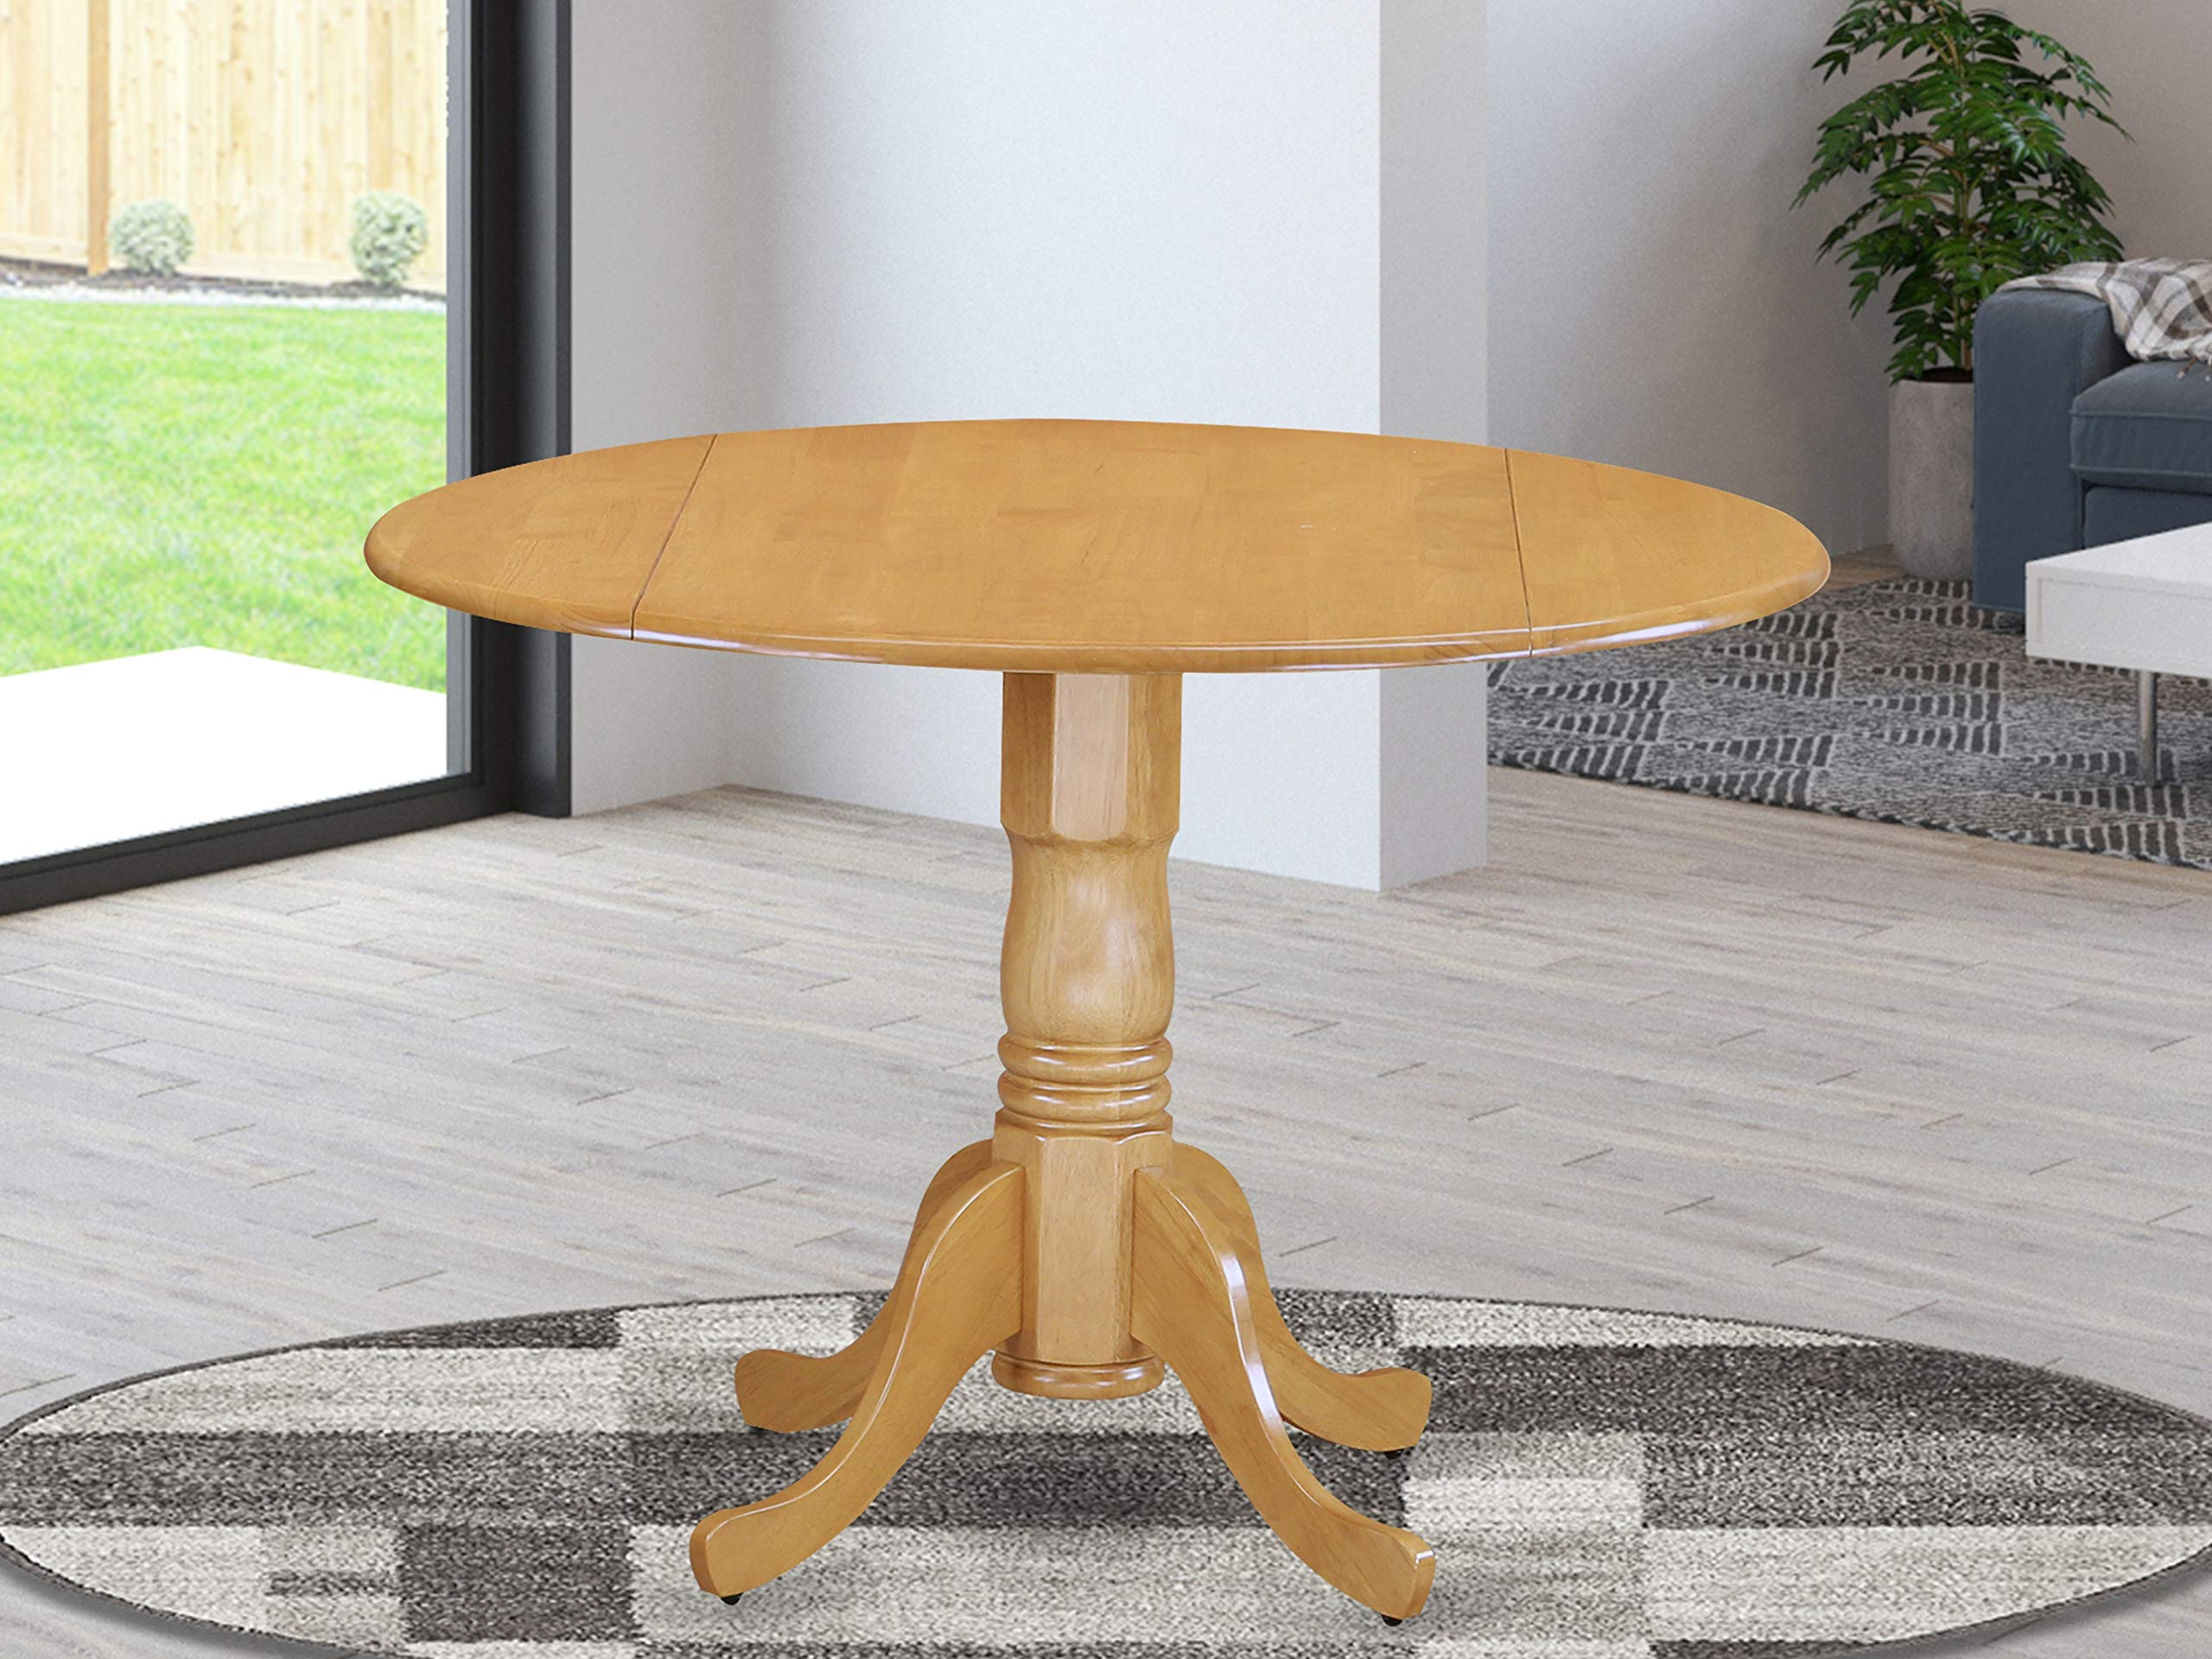 East West Furniture DLT-OAK-TP Round Table with Two 9-Inch Drop Leaves by East West Furniture